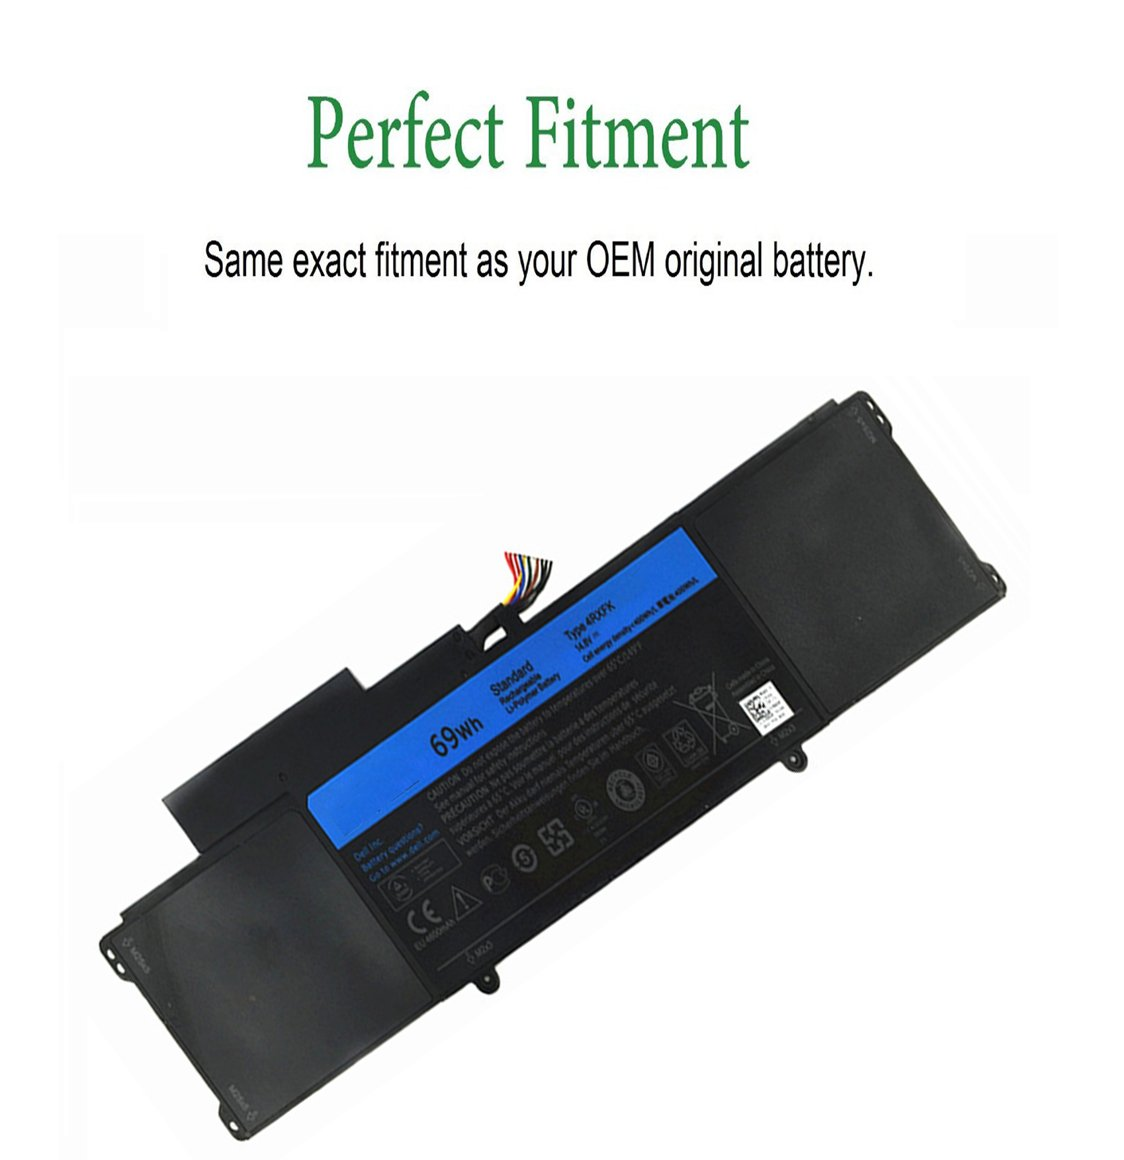 Amazon.com: 69wh 4rxfk C1jkh Battery for Dell Xps 14-l421x Ultrabook 14 L421x Series: Computers & Accessories